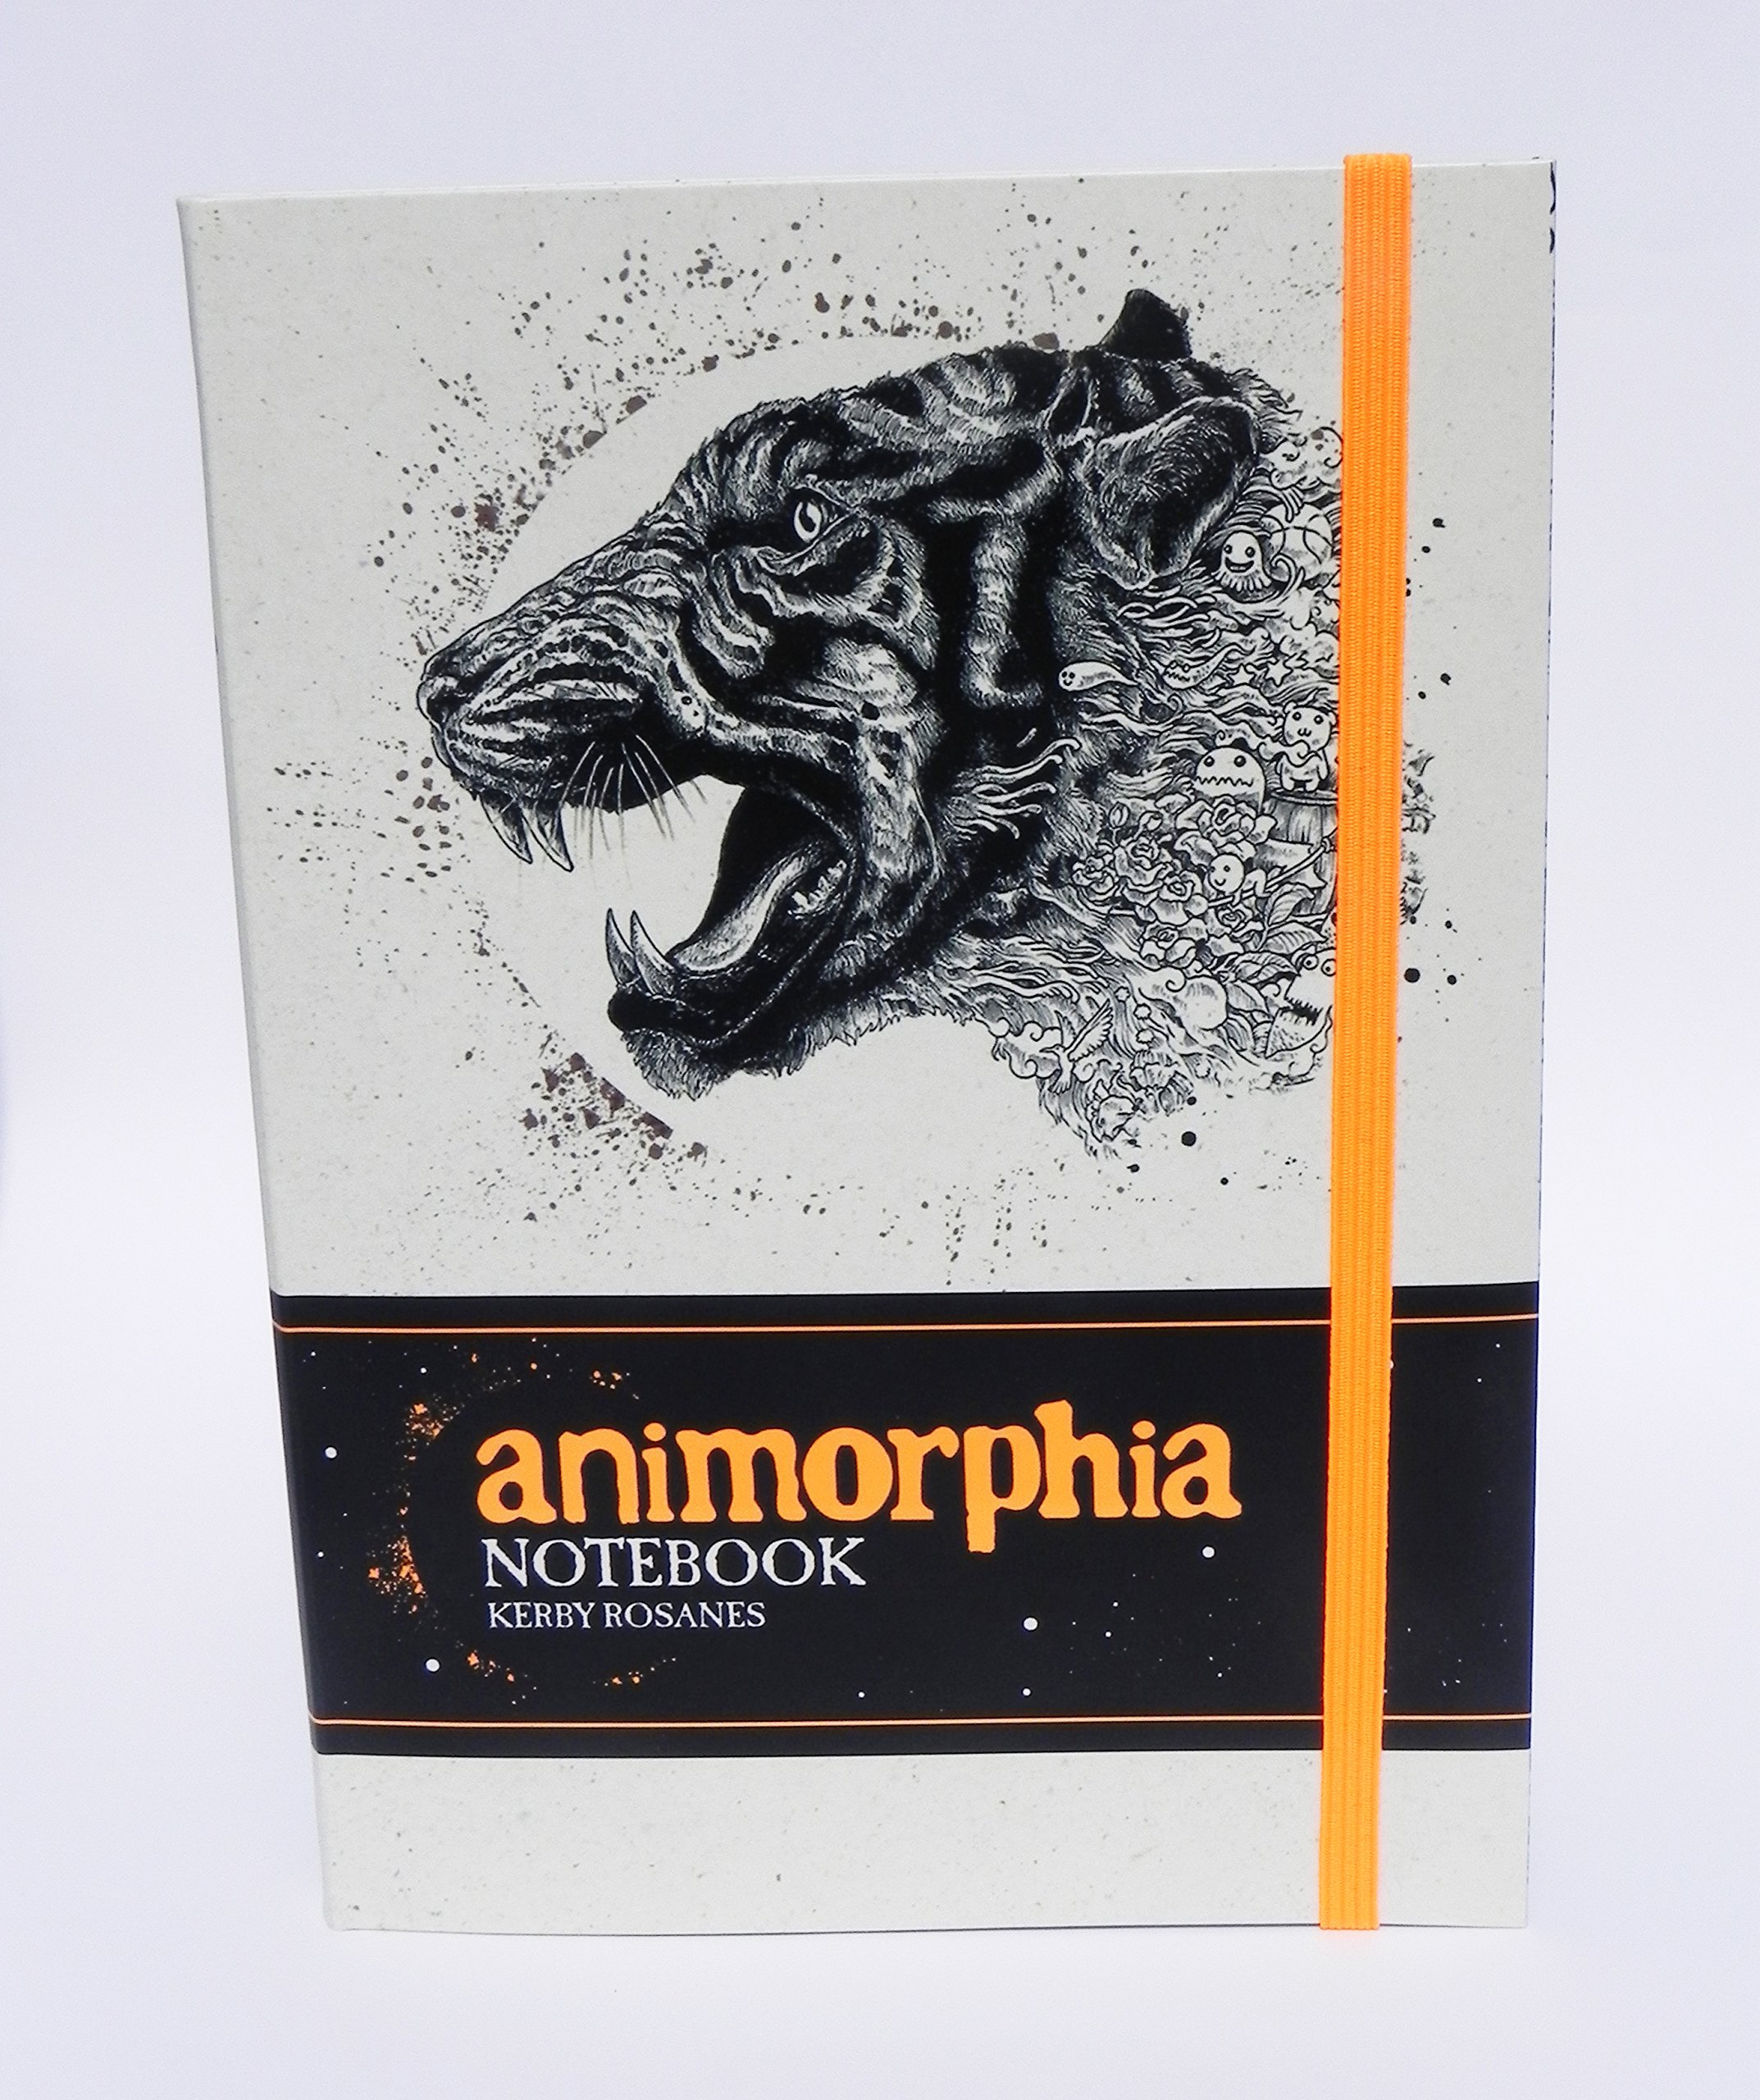 Animorphia Notebook Kerby Rosanes 9781910552230 Amazon Books